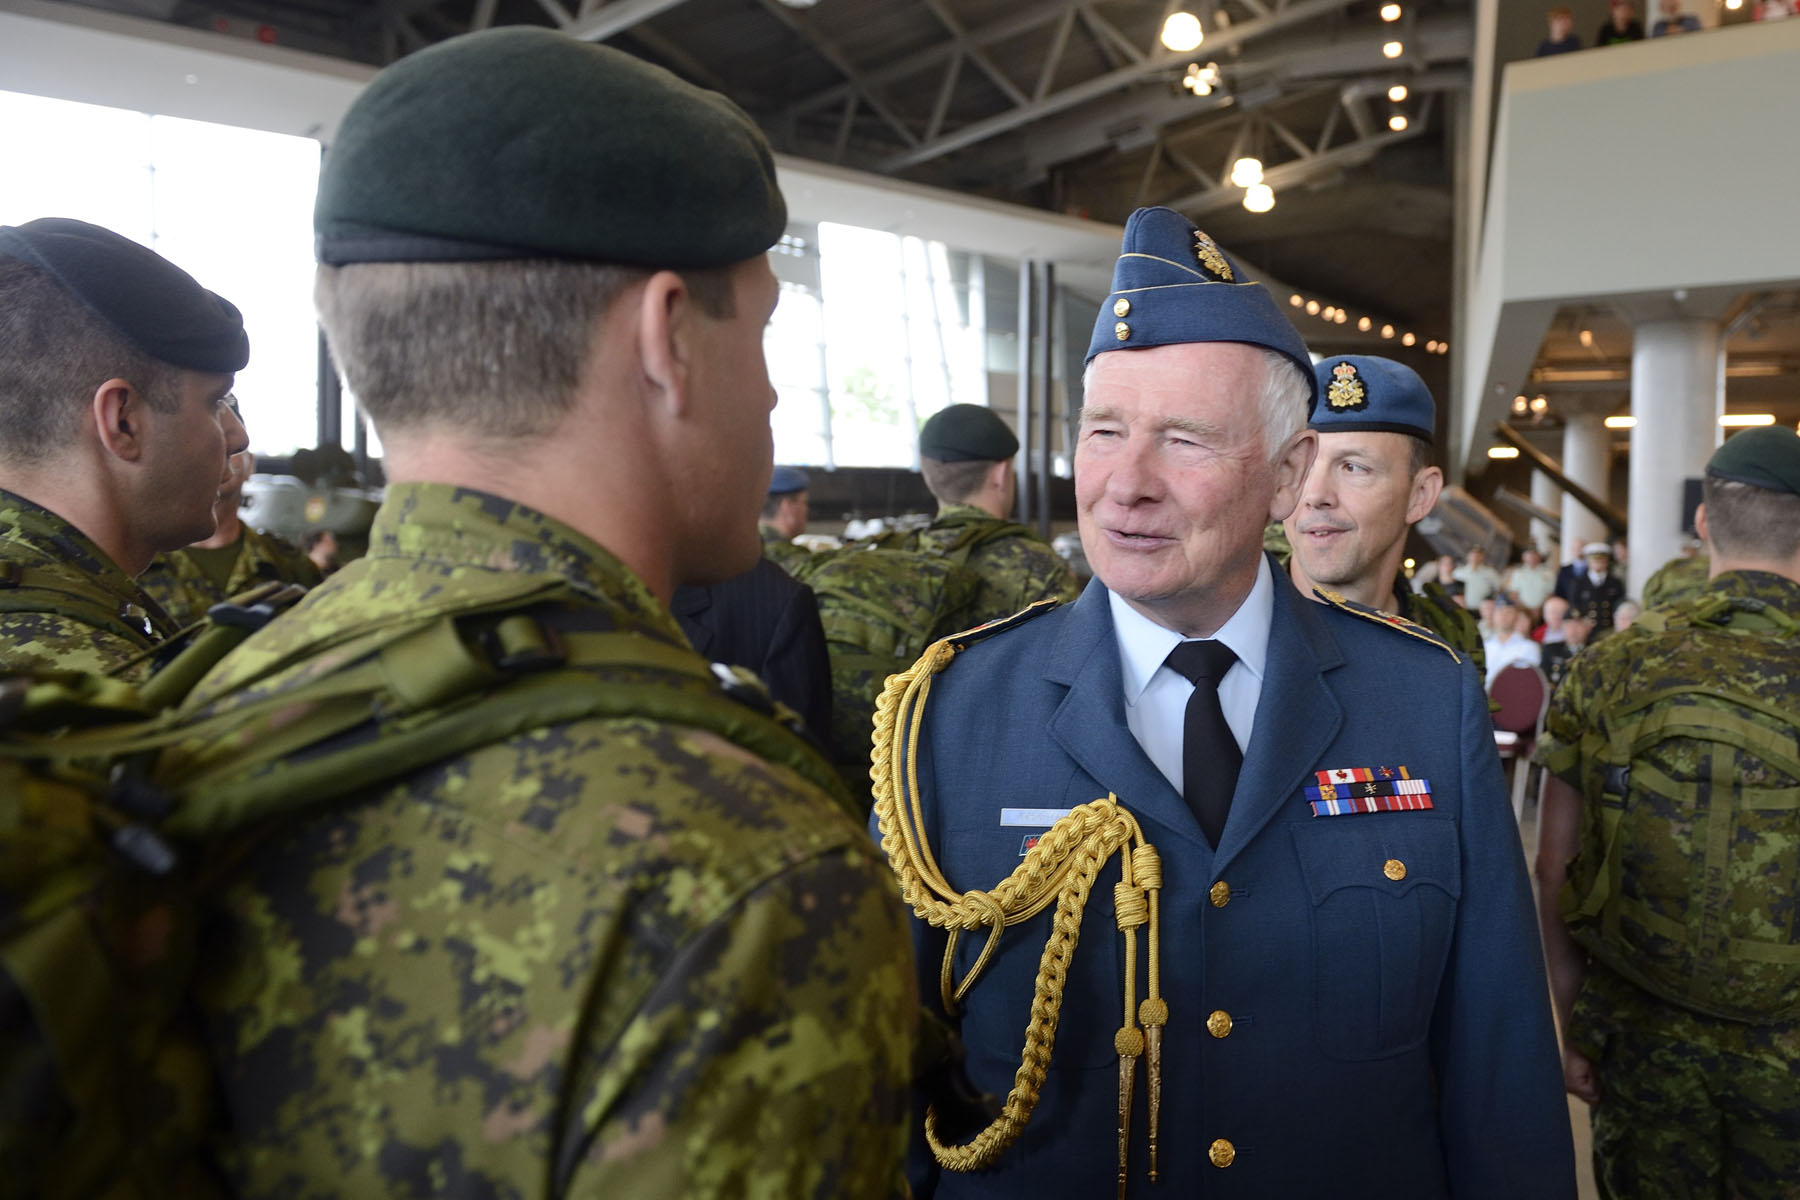 The Governor General and Commander-in-Chief of Canada reviewed a departure parade of Canadian Armed Forces (CAF) members participating in the Nijmegen Marches, at the Canadian War Museum.